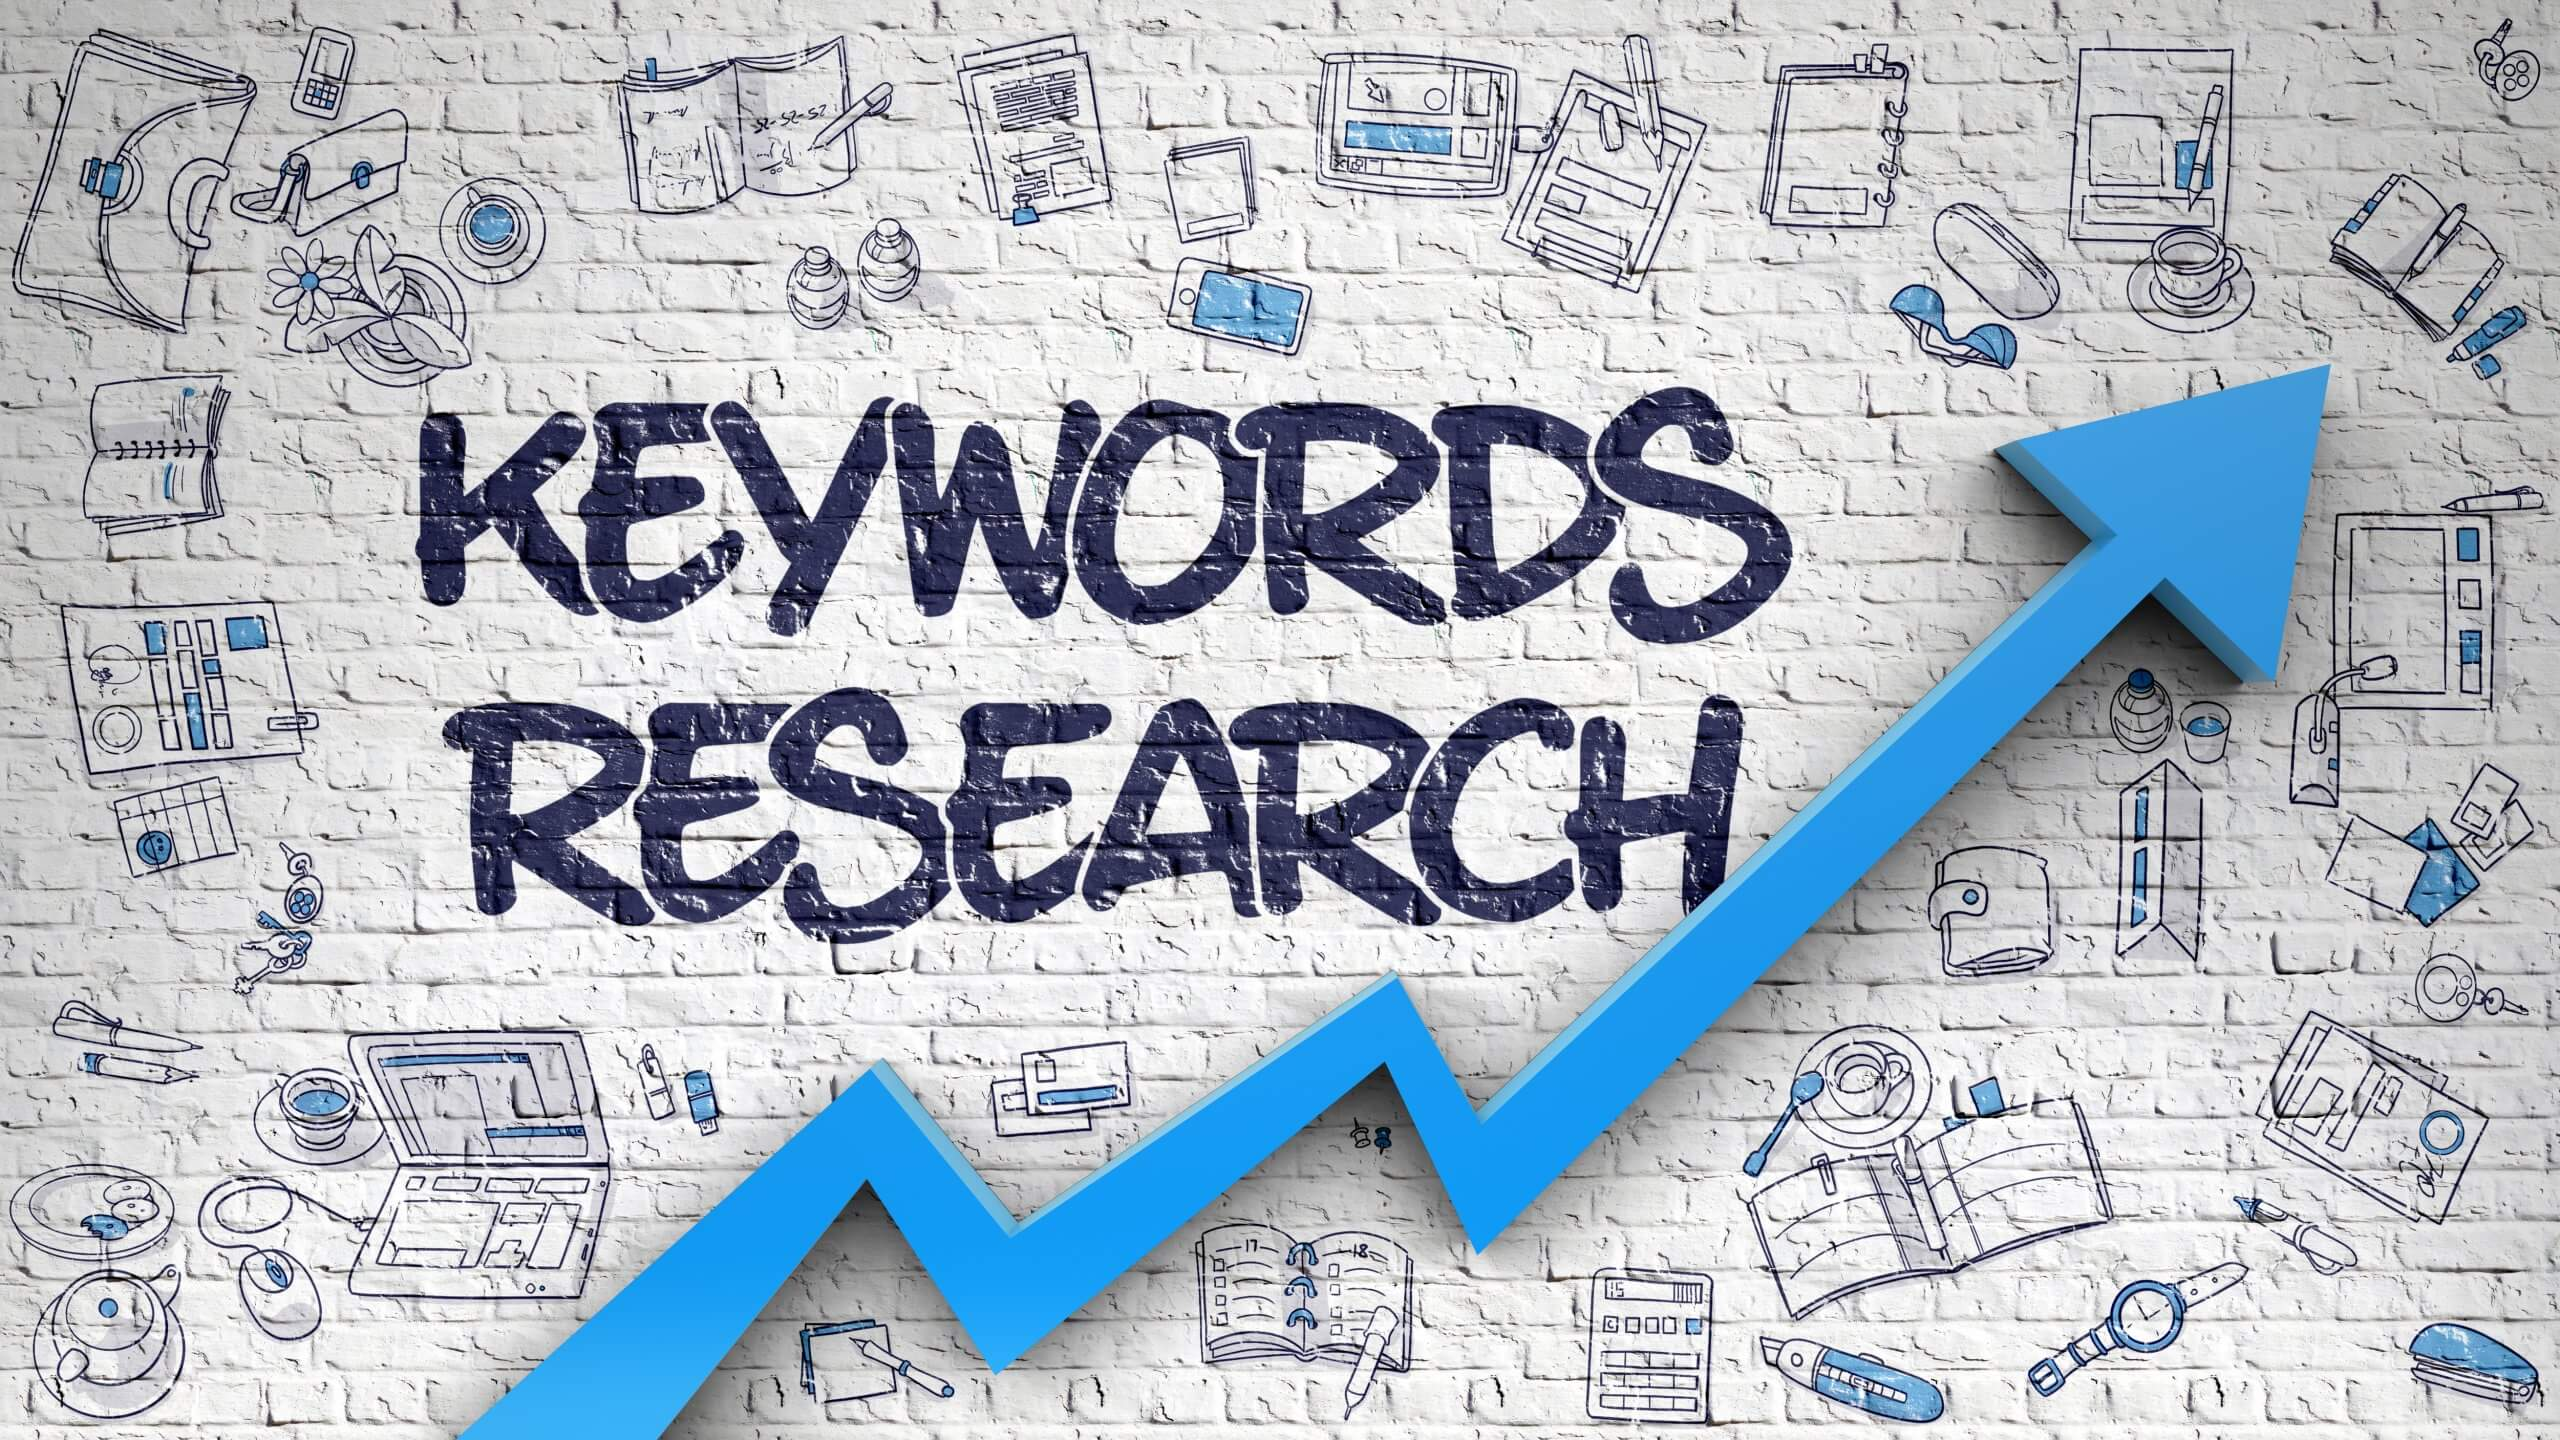 """Keywords Research"" written in block letters against a white background with multiple sketches all around it. A bold, blue-colored arrow points upwards."